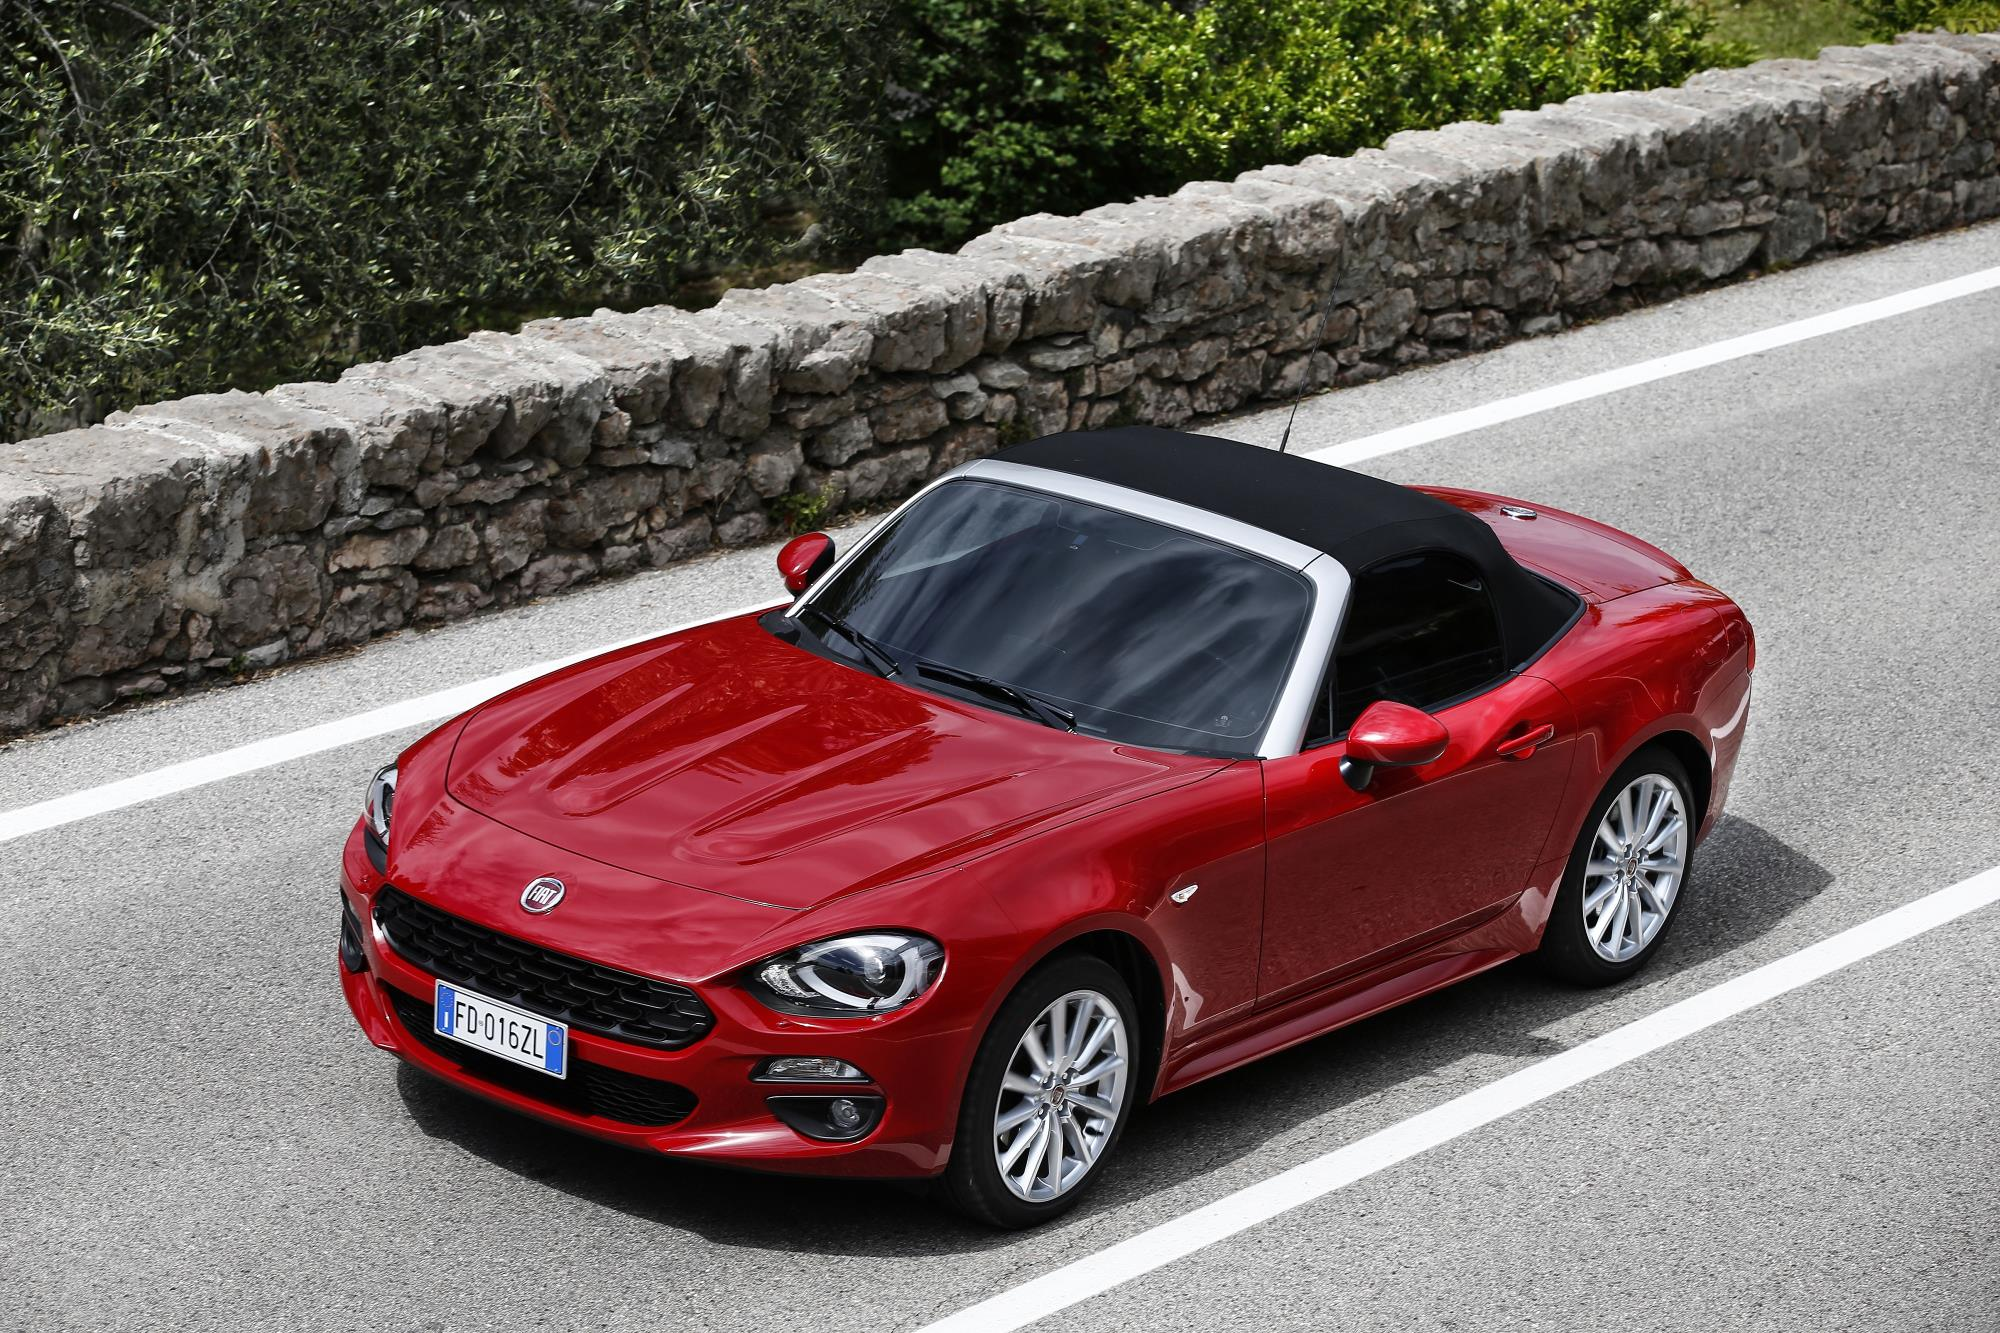 Fiat 124 spider named european gay car of the year 2017 for Fiat 124 spider motor